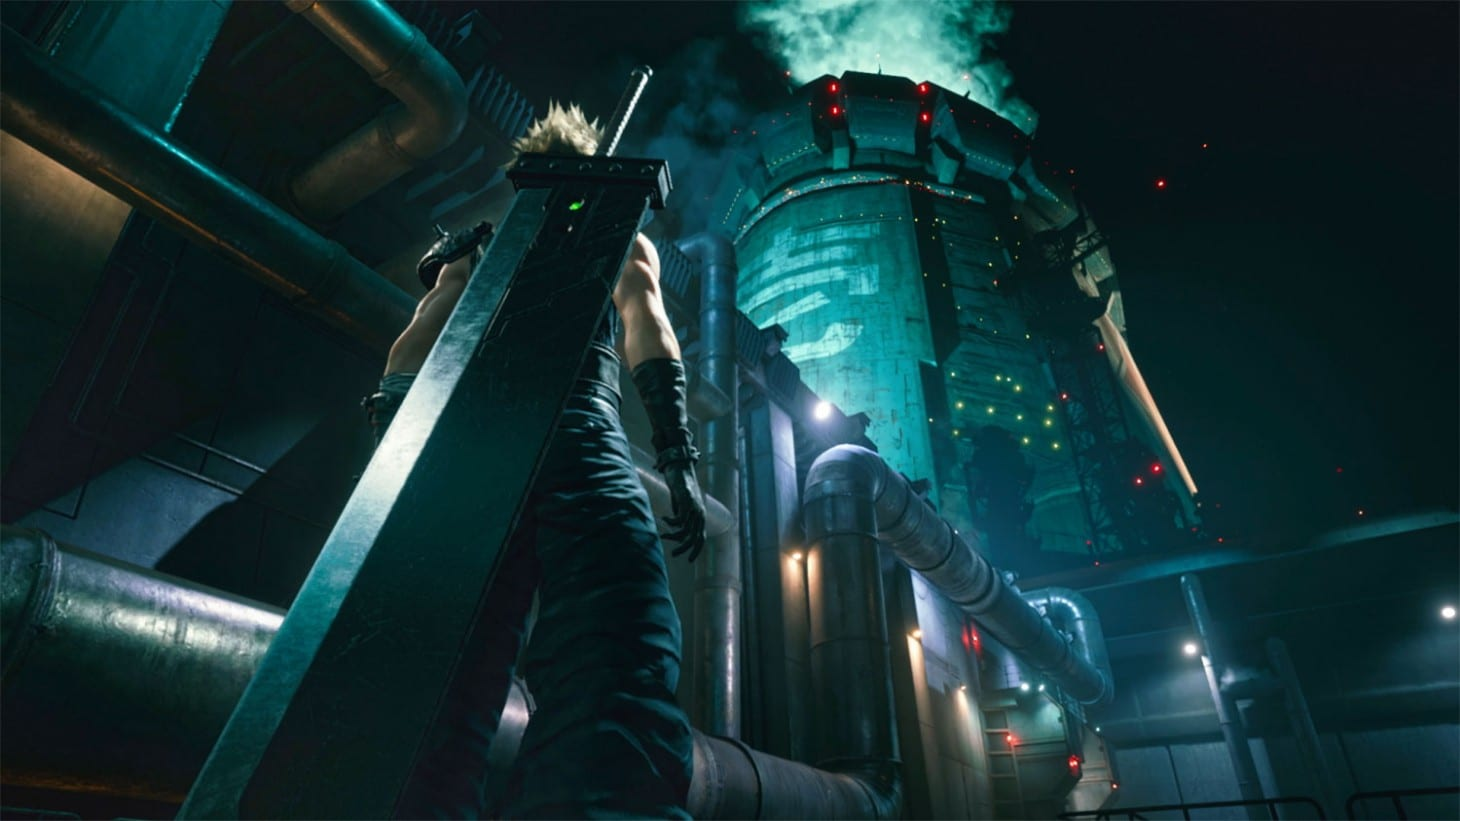 final fantasy vii remake change difficulty